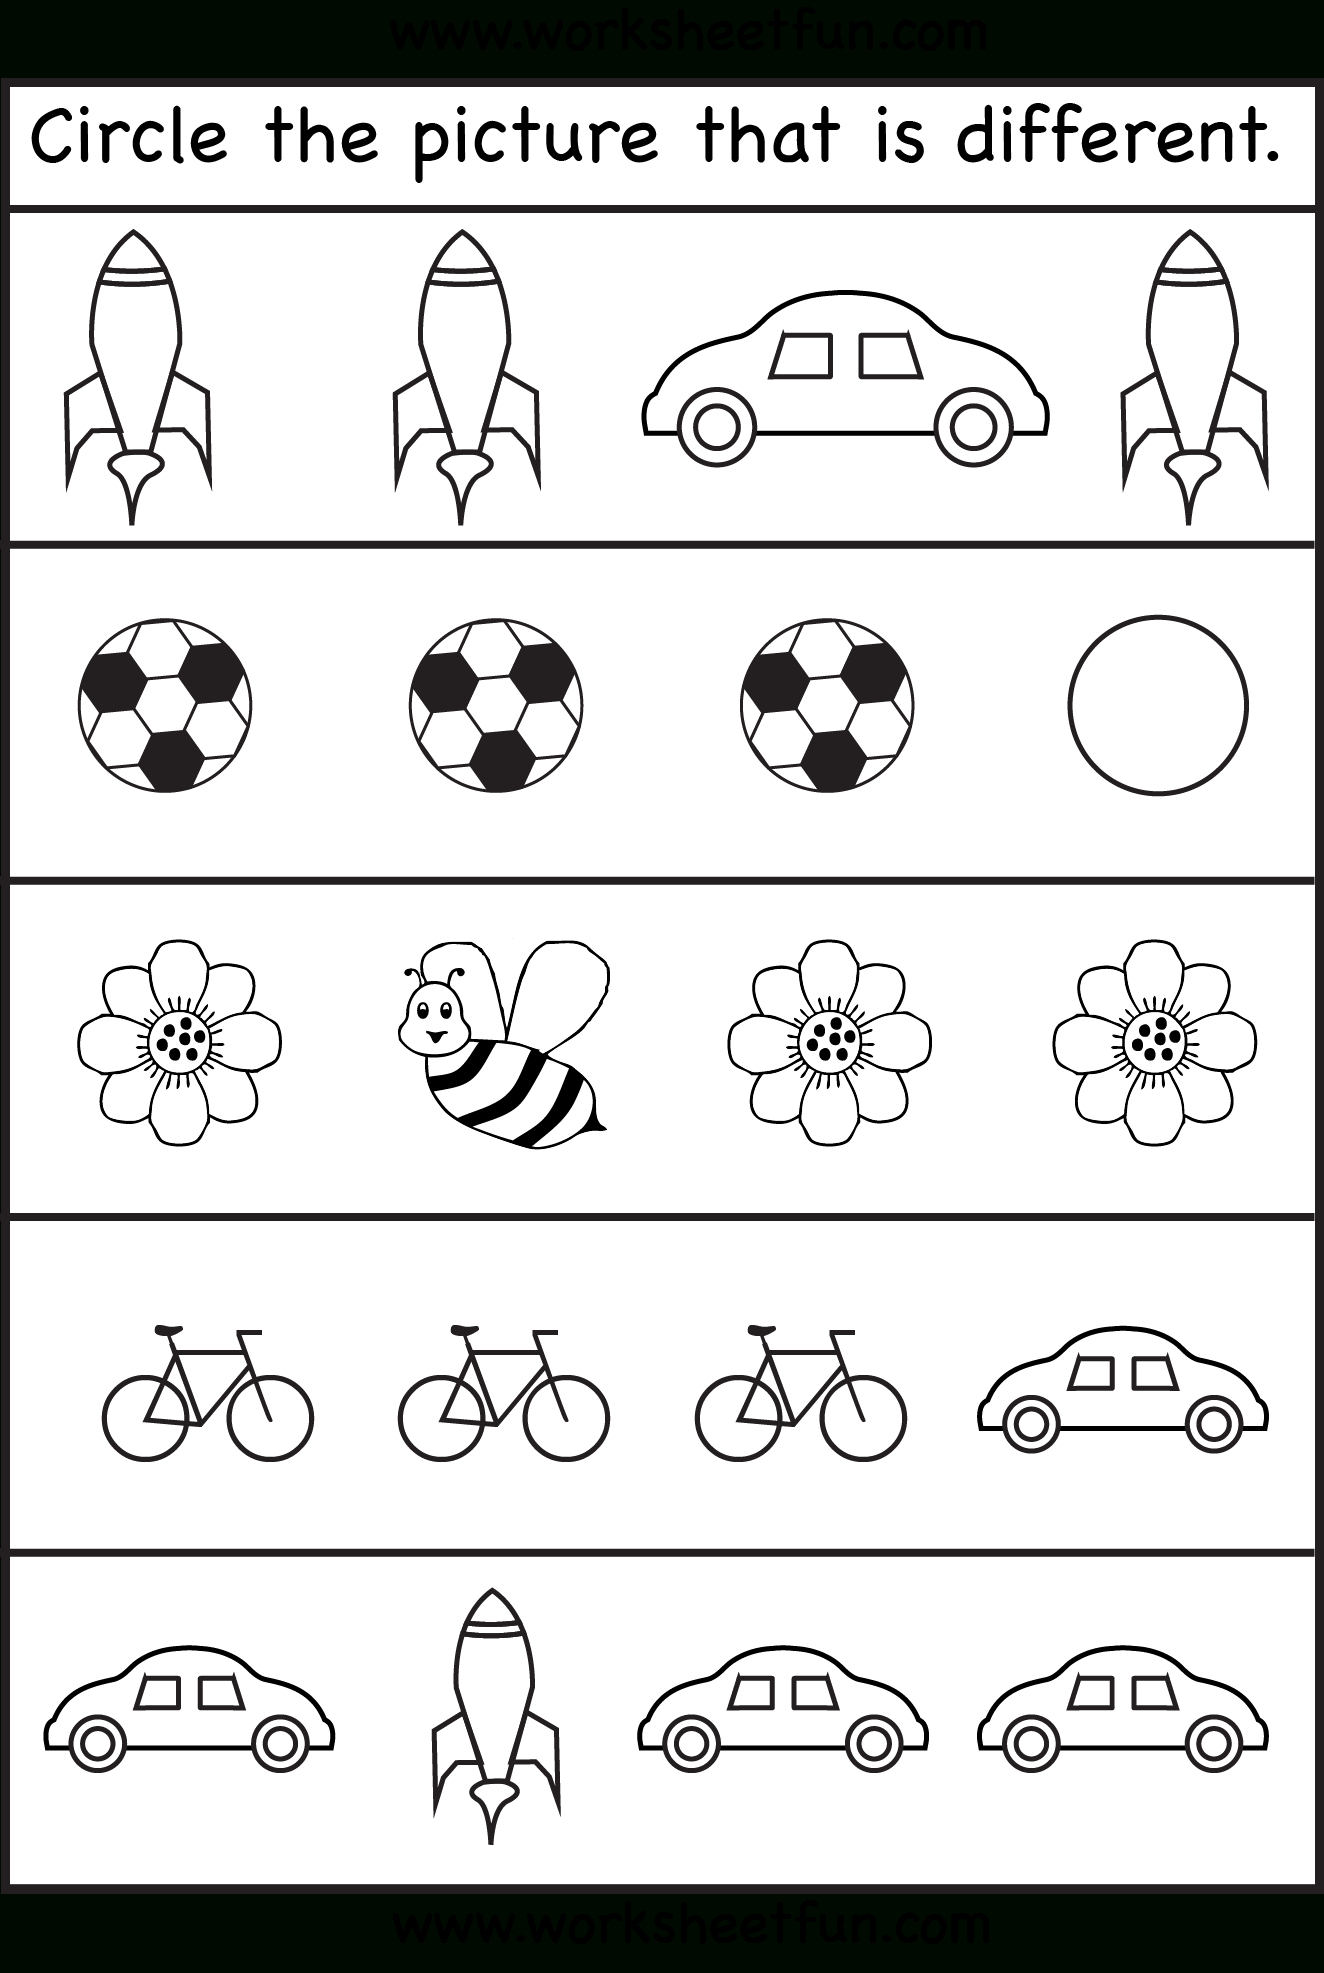 Circle The Picture That Is Different - 4 Worksheets   Printable - Free Printable Learning Pages For Toddlers